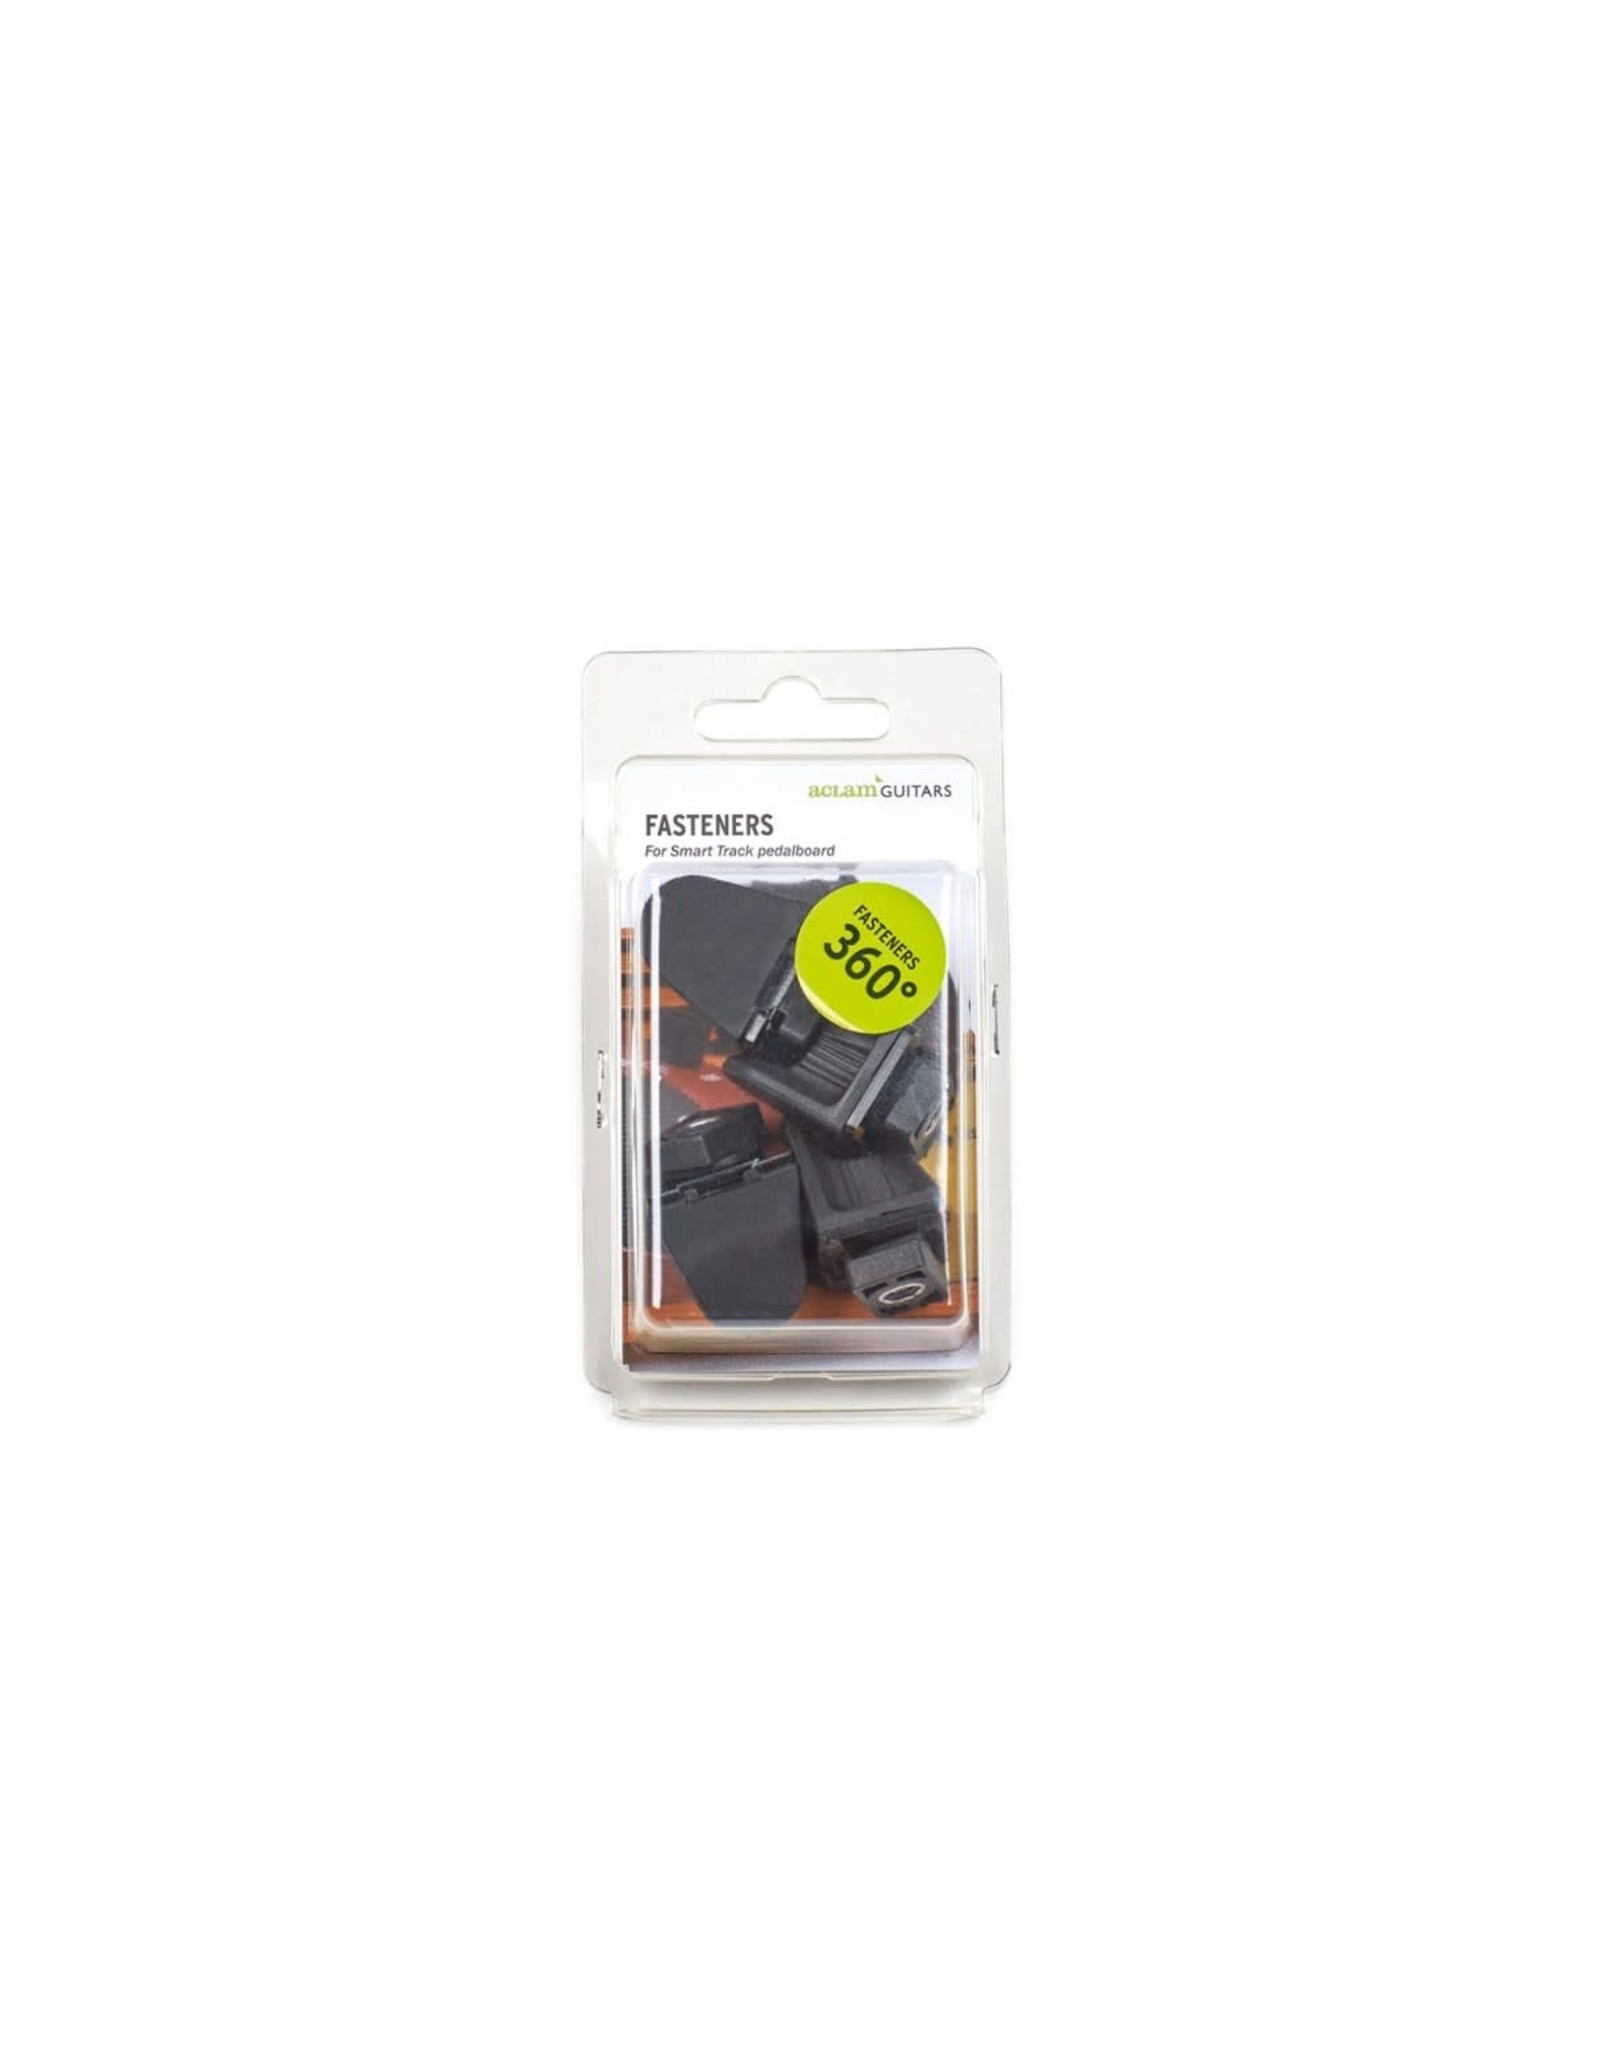 Aclam' Aclam' Smart Track Fasteners 360º 4 pack